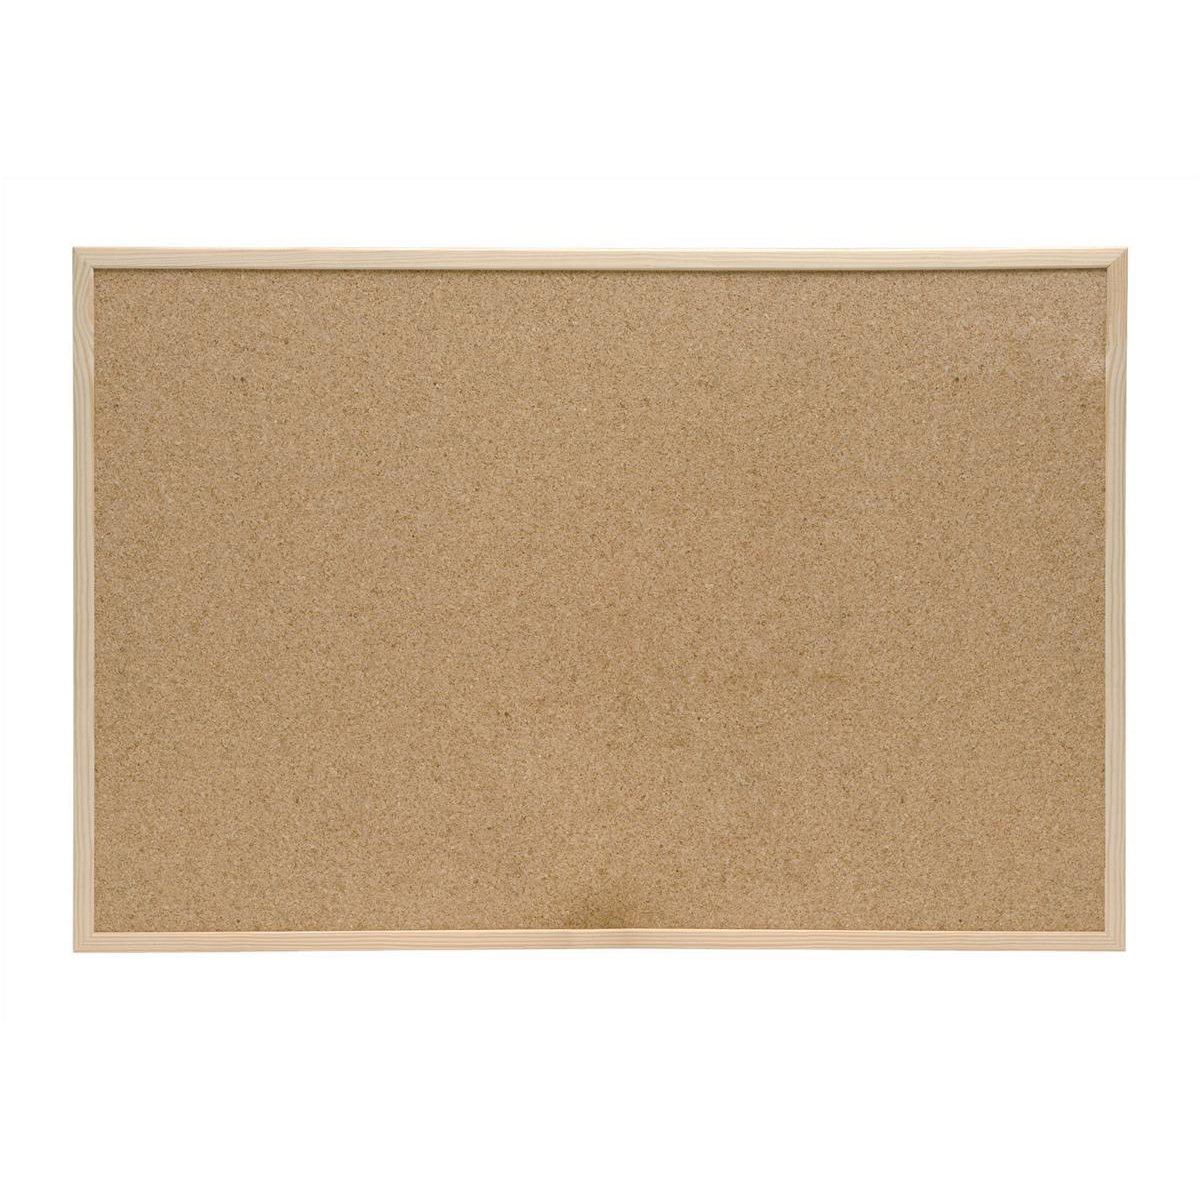 Cork 5 Star Office Noticeboard Cork with Pine Frame W900xH600mm